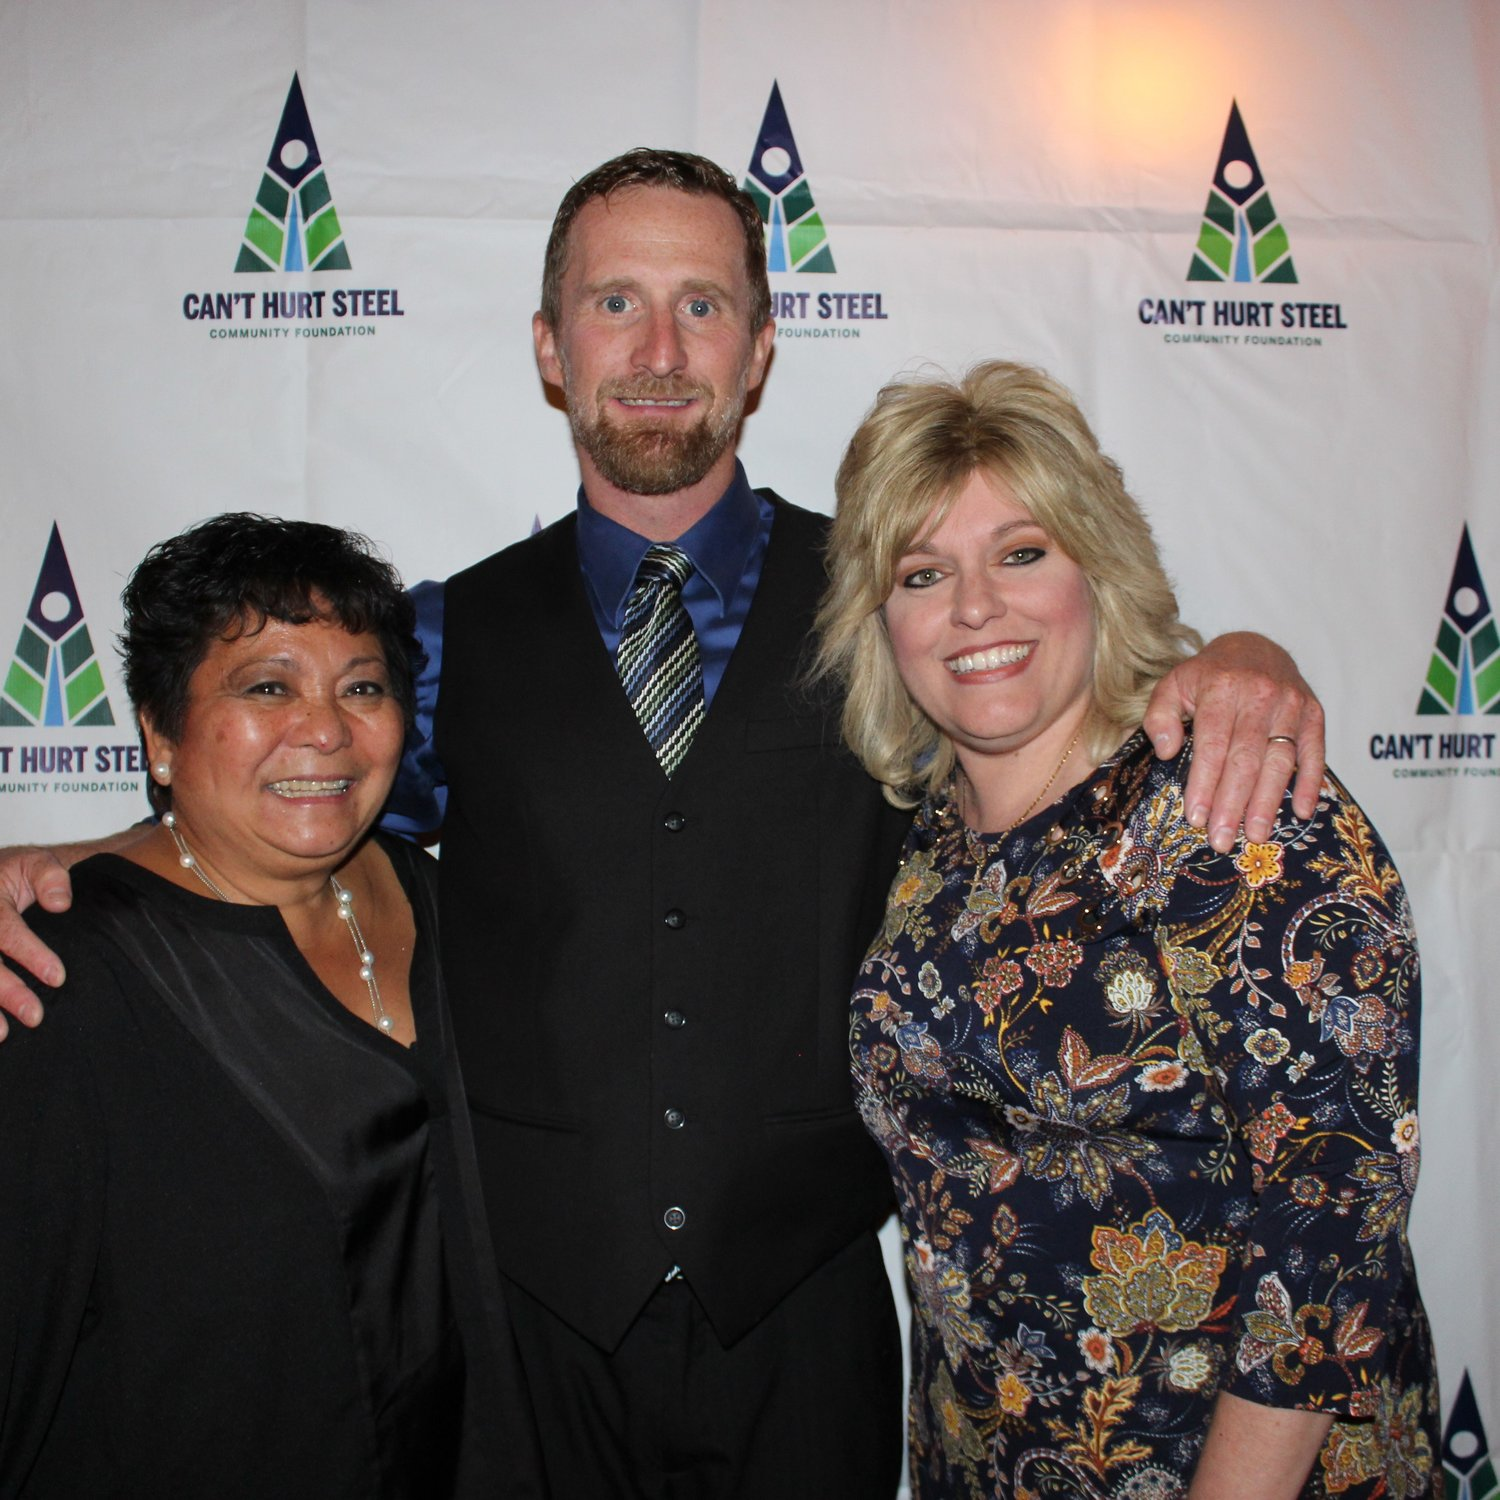 Honored at the Can't Hurt Steel Foundation gala were Cathy Daboul, left, Ryan Gillespie and Pam Kocher.